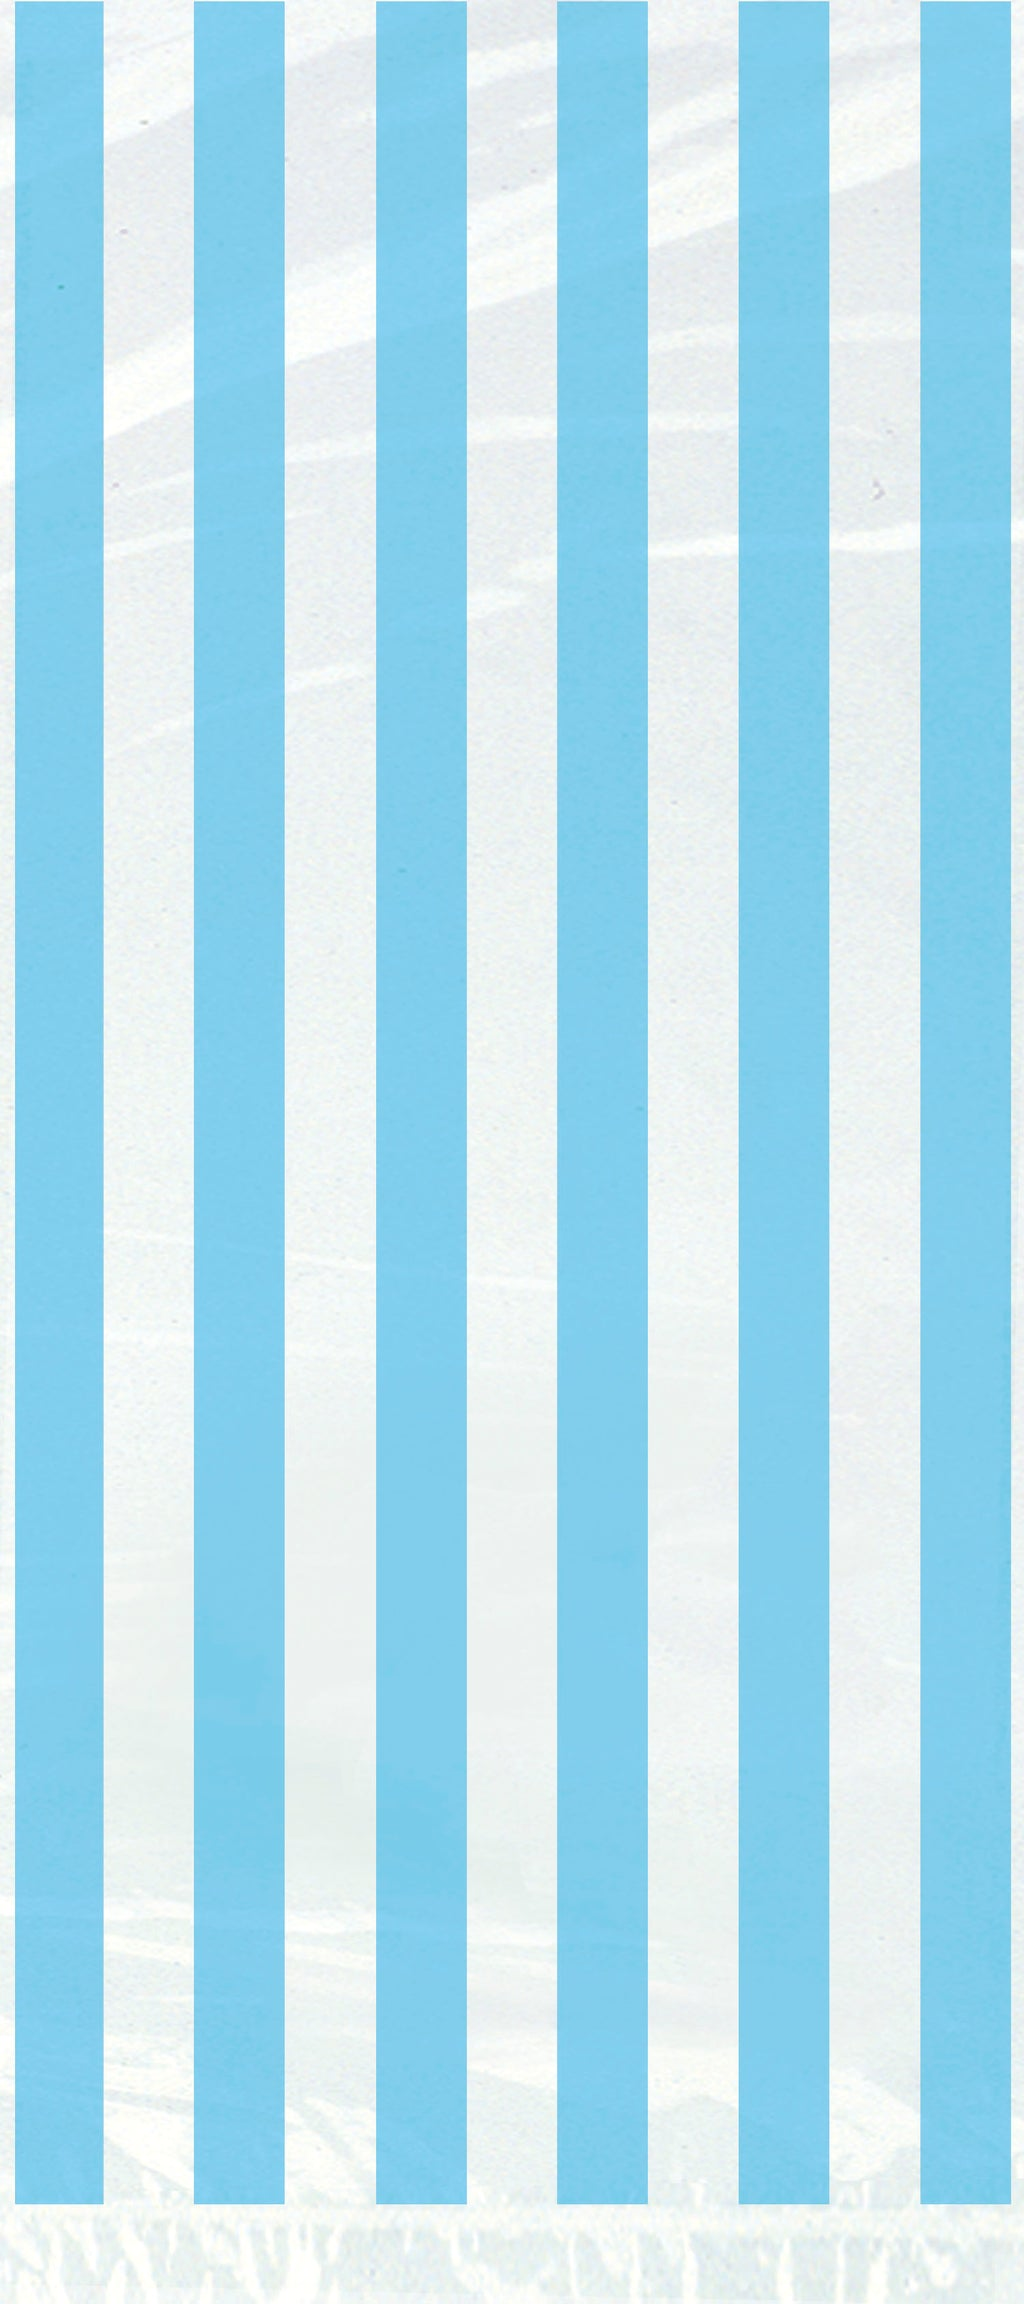 20 Powder Blue Striped Cellophane Bags